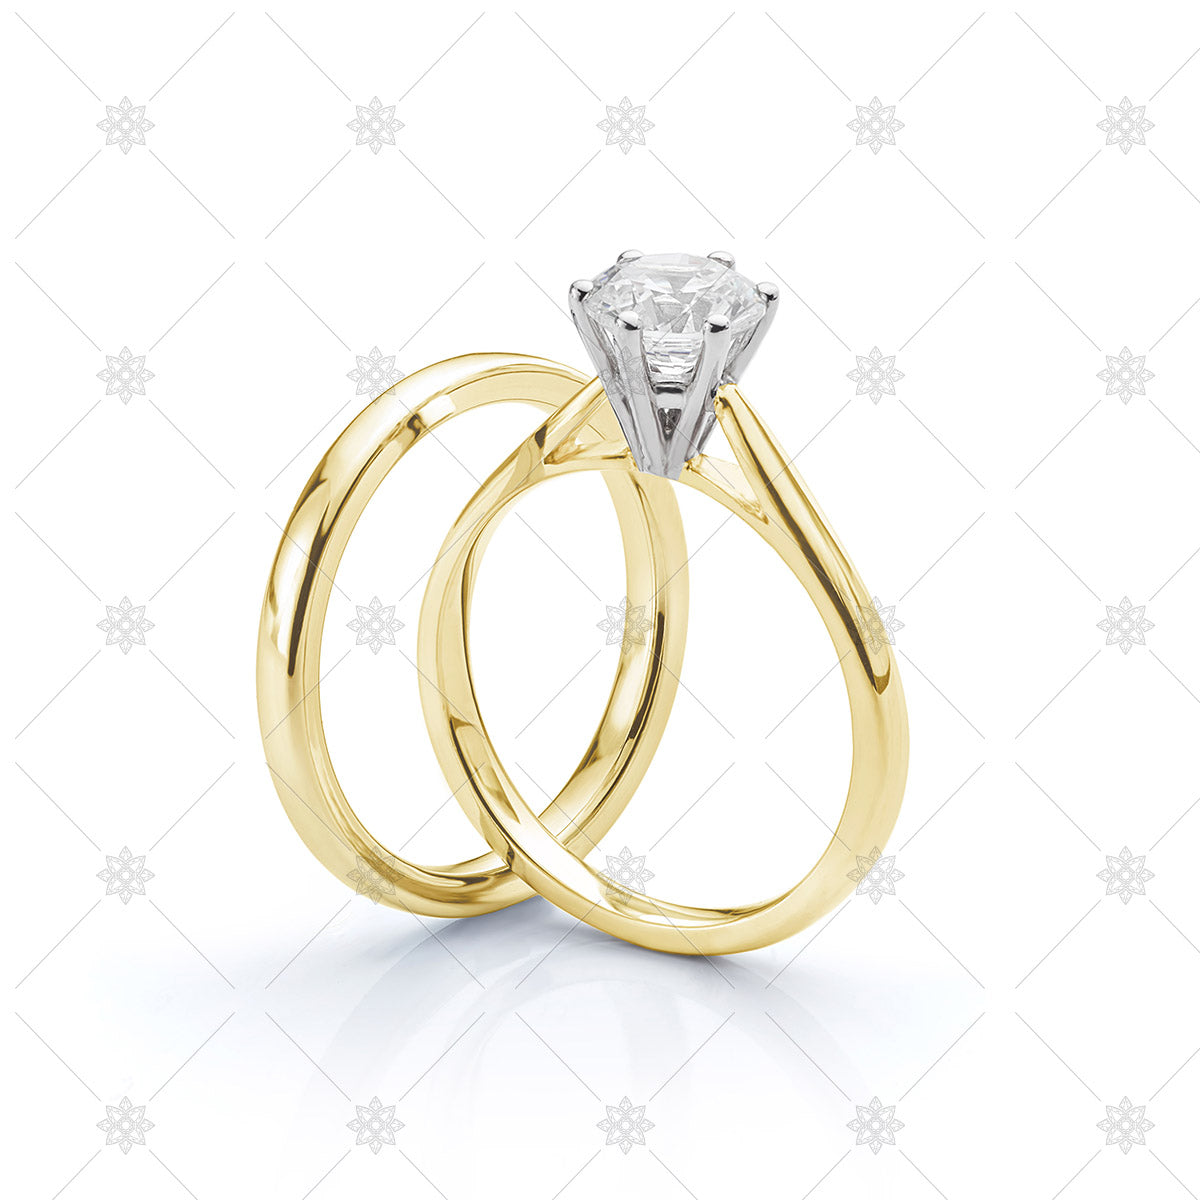 Yellow Gold Wedding Band and Engagement Ring Set